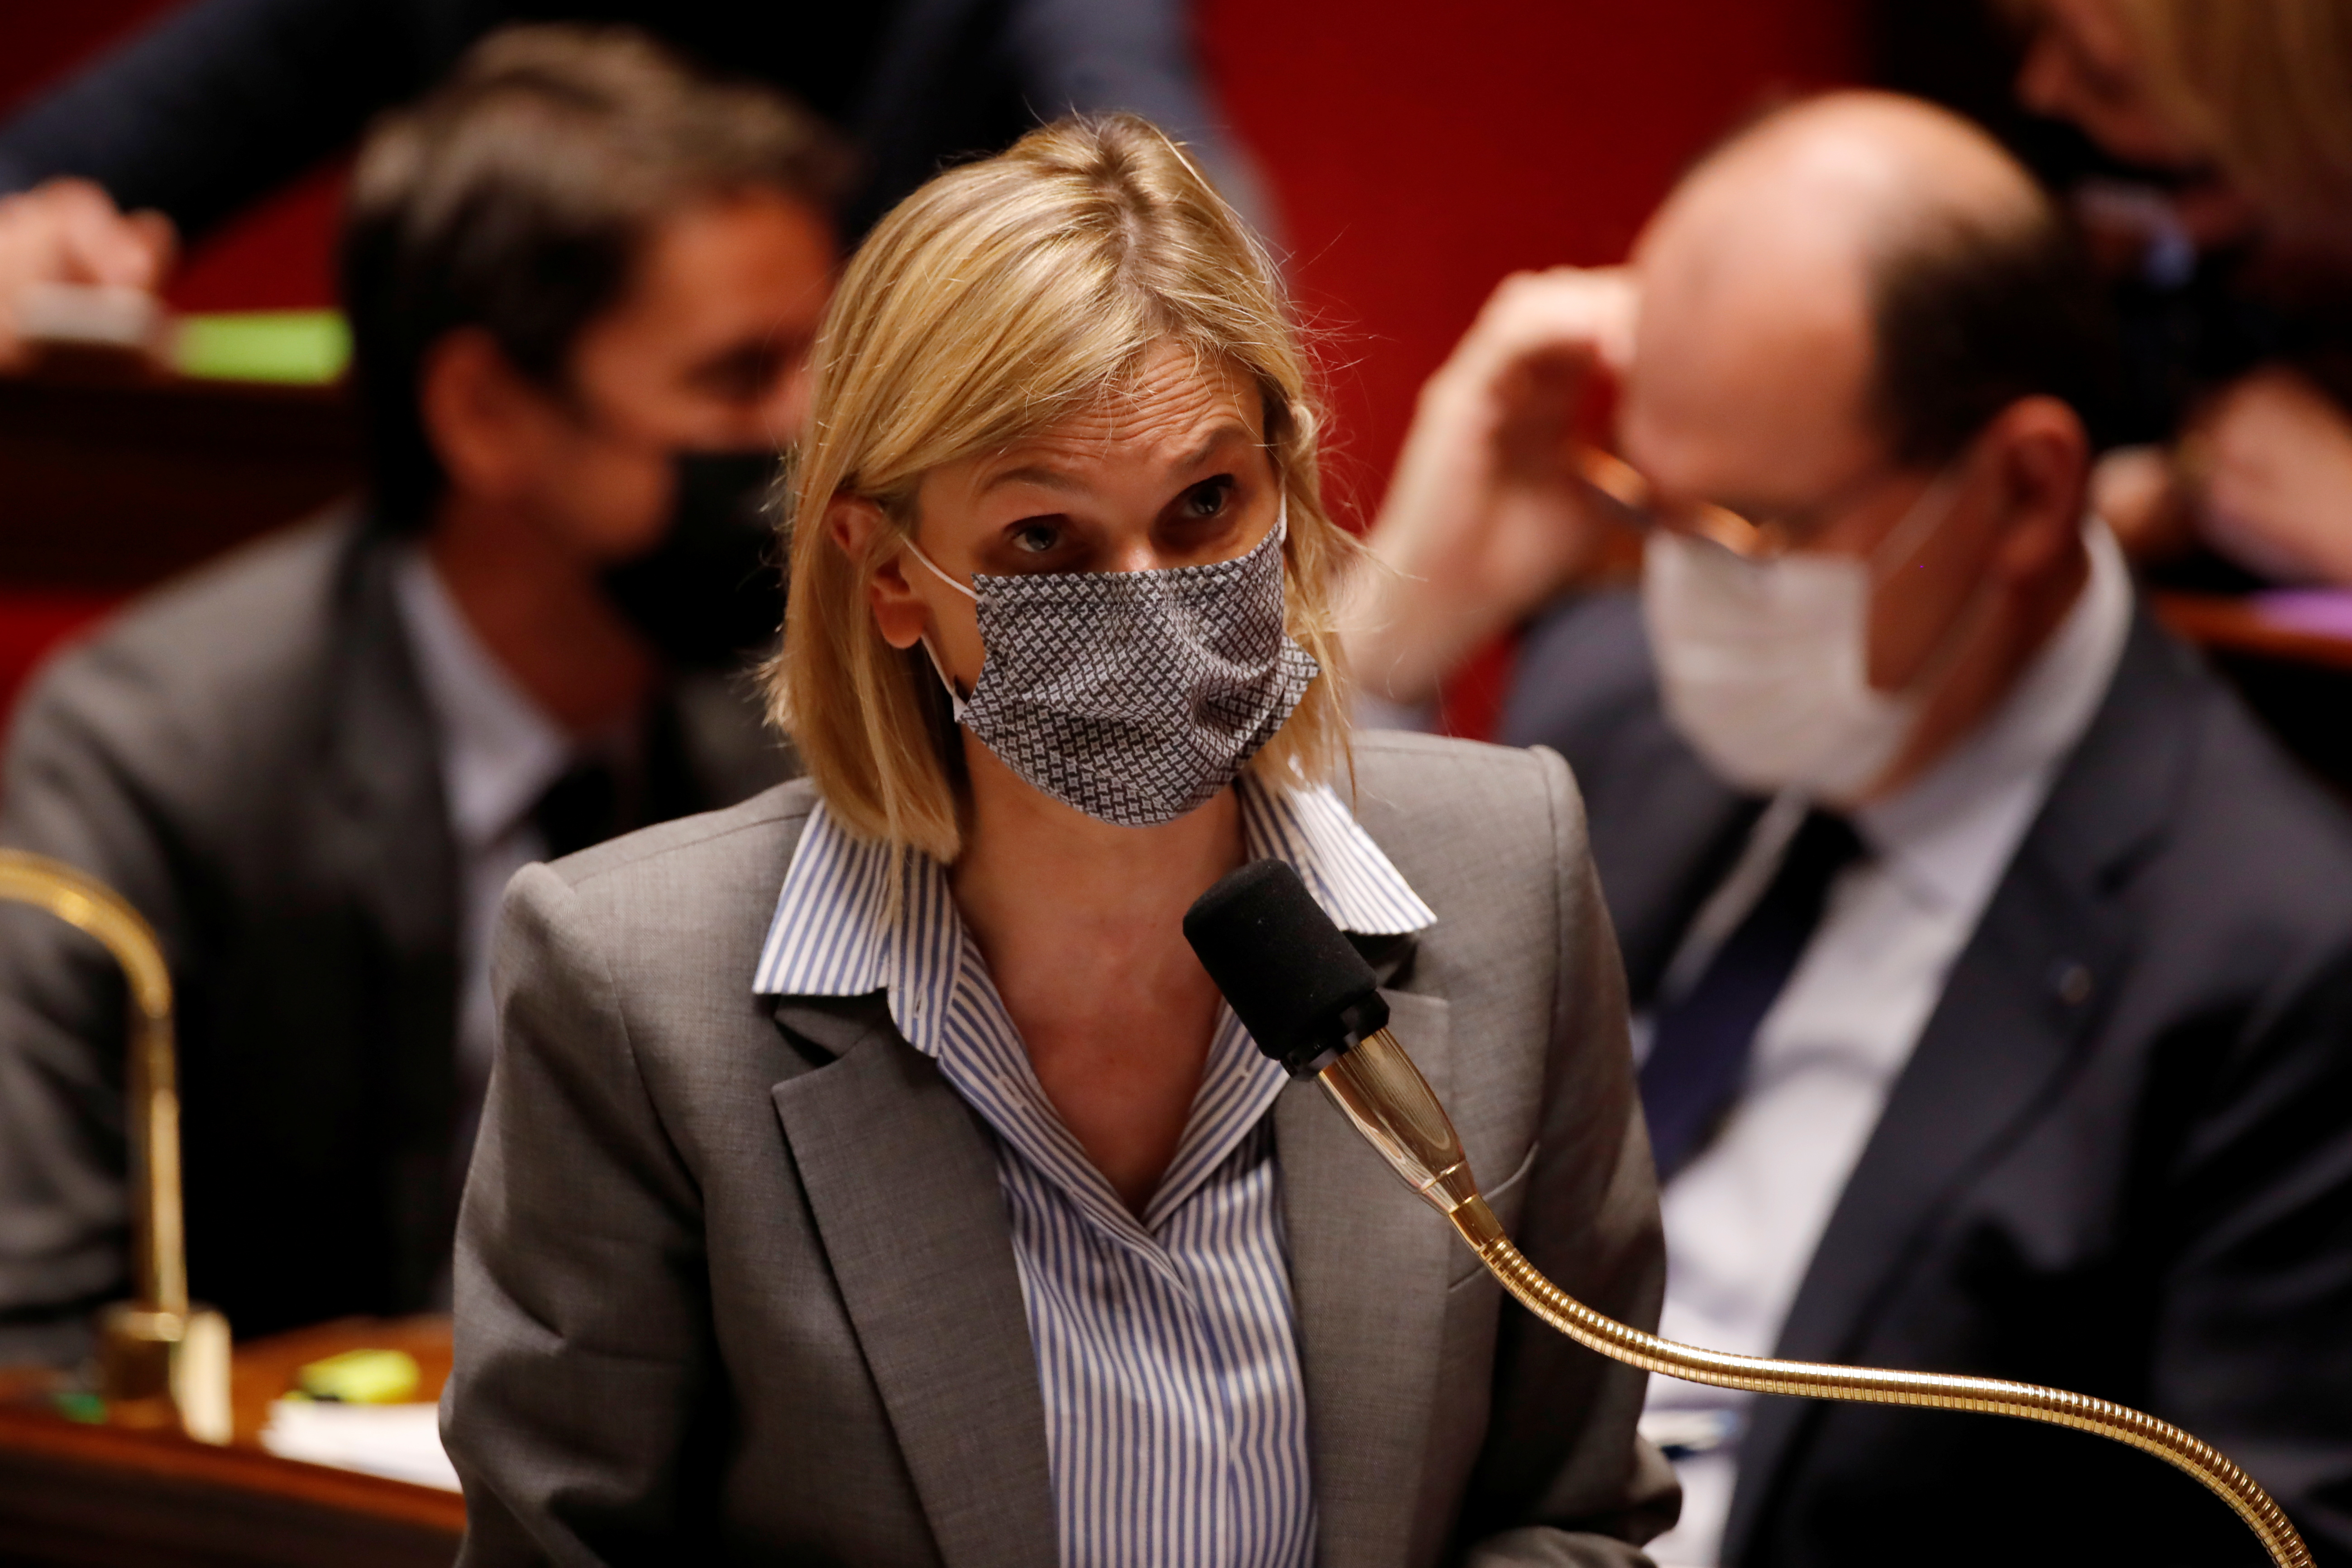 French Junior Industry Minister Agnes Pannier-Runacher, wearing a protective face mask, speaks during the questions to the government session before a final vote on controversial climate change bill at the National Assembly in Paris, France, May 4, 2021. REUTERS/Sarah Meyssonnier